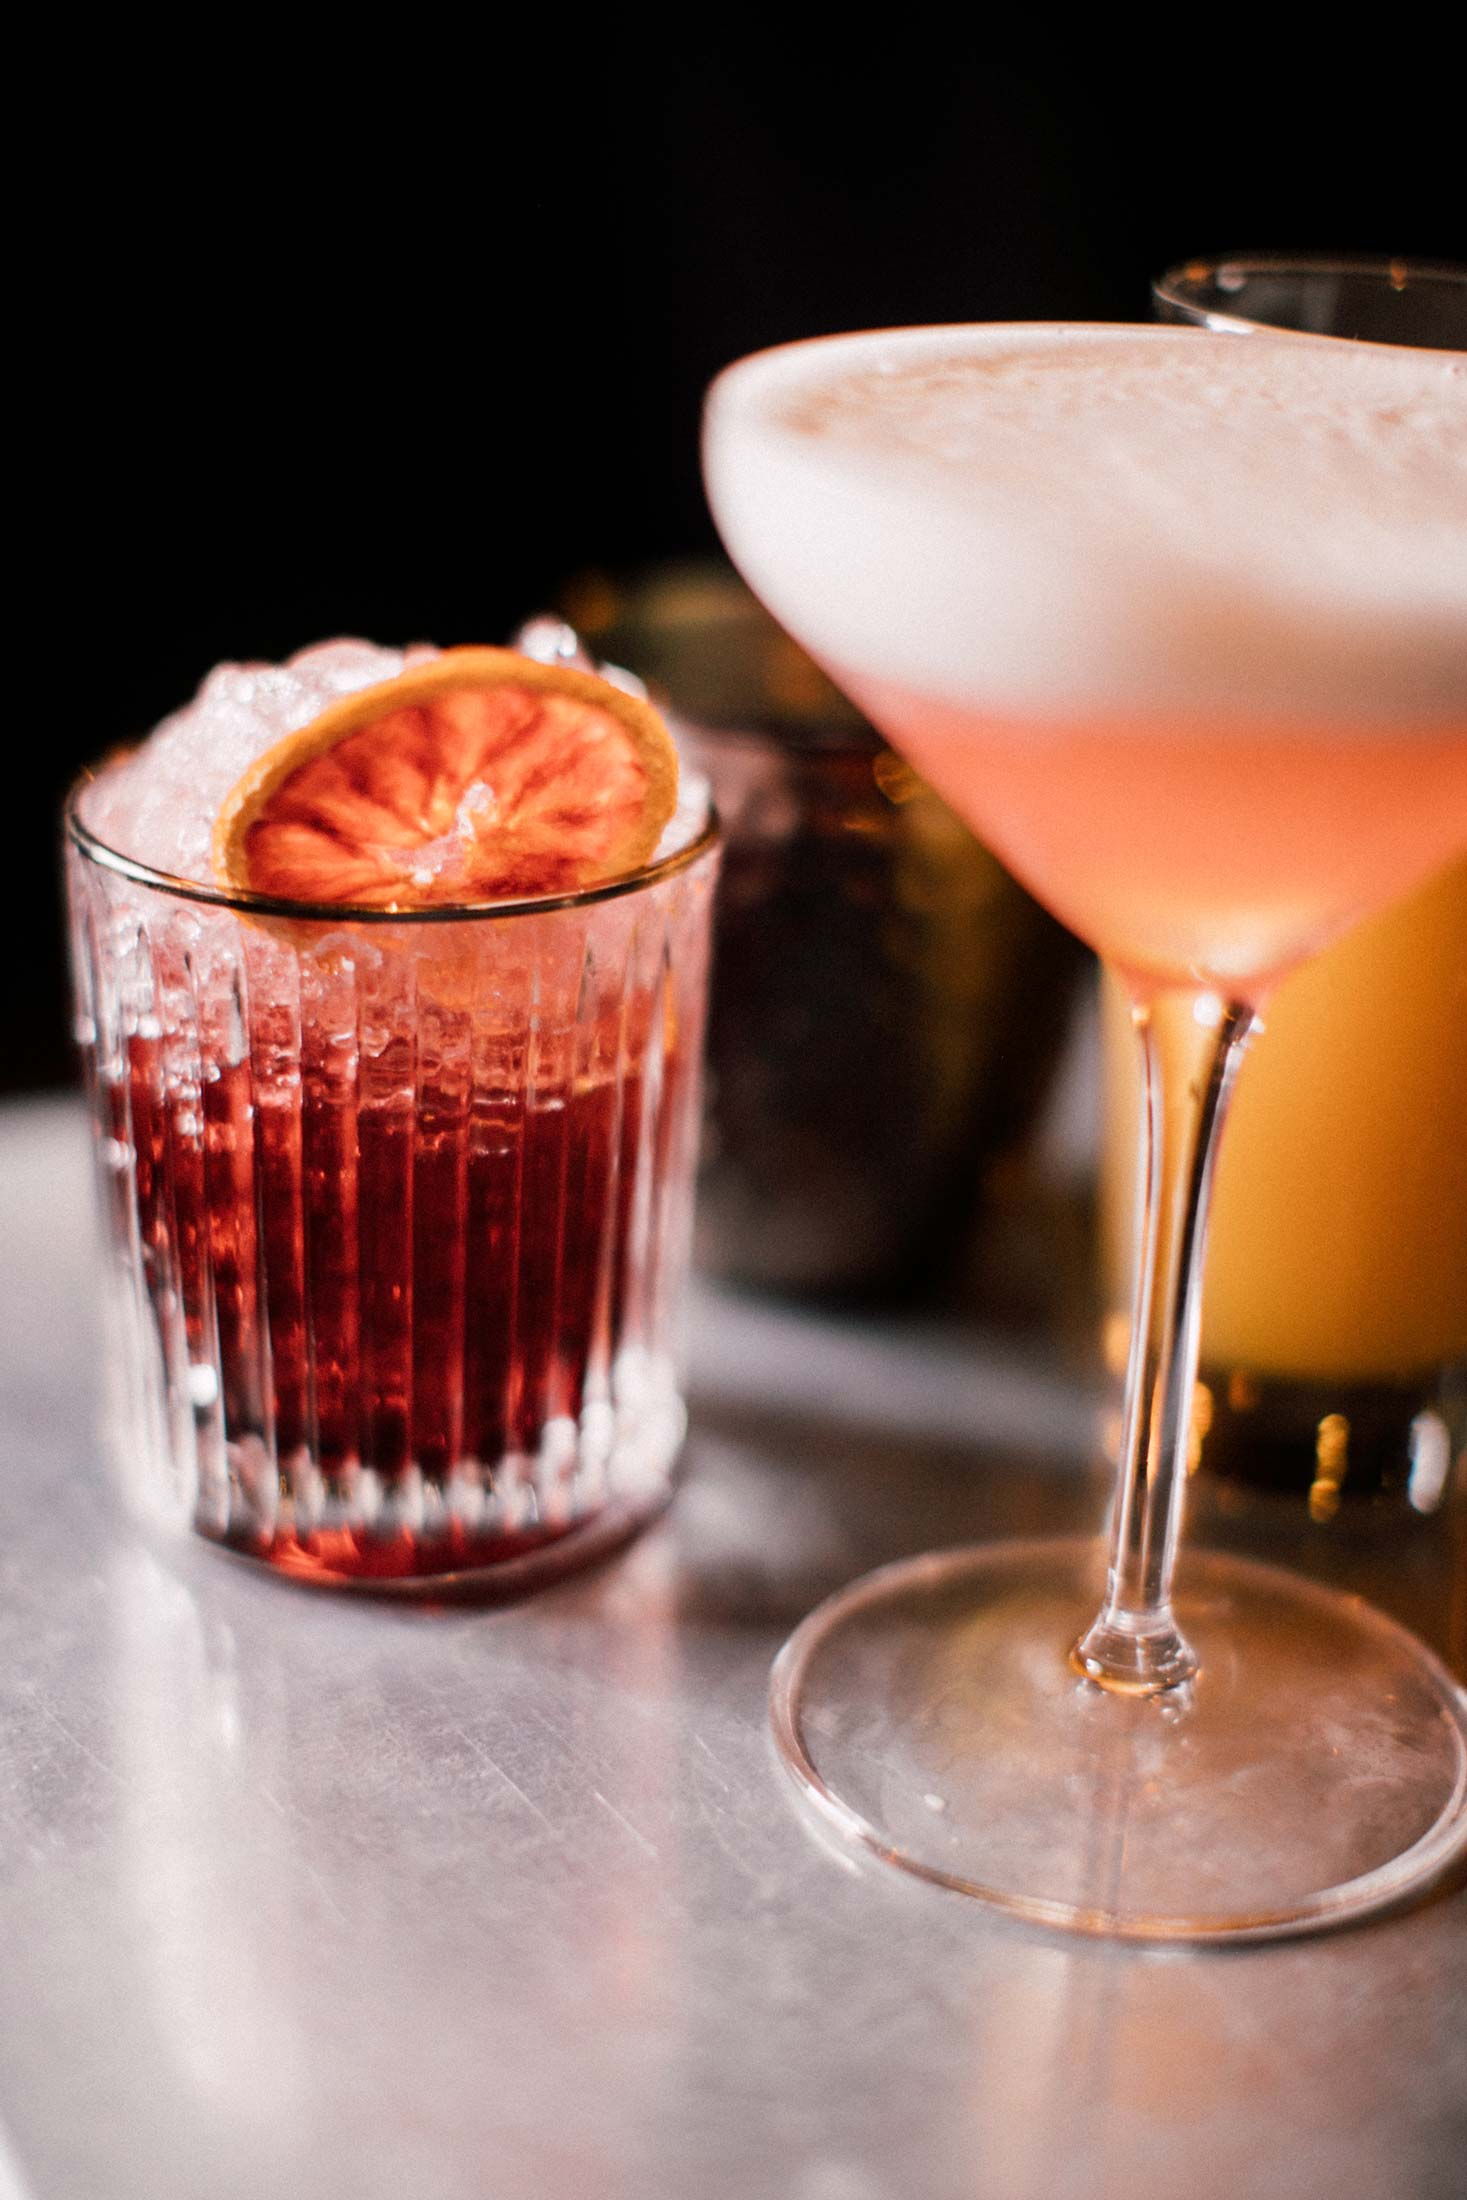 A sampling of cocktails from the inventive and ever-evolving drinks menu featuring Dyer's spirits.